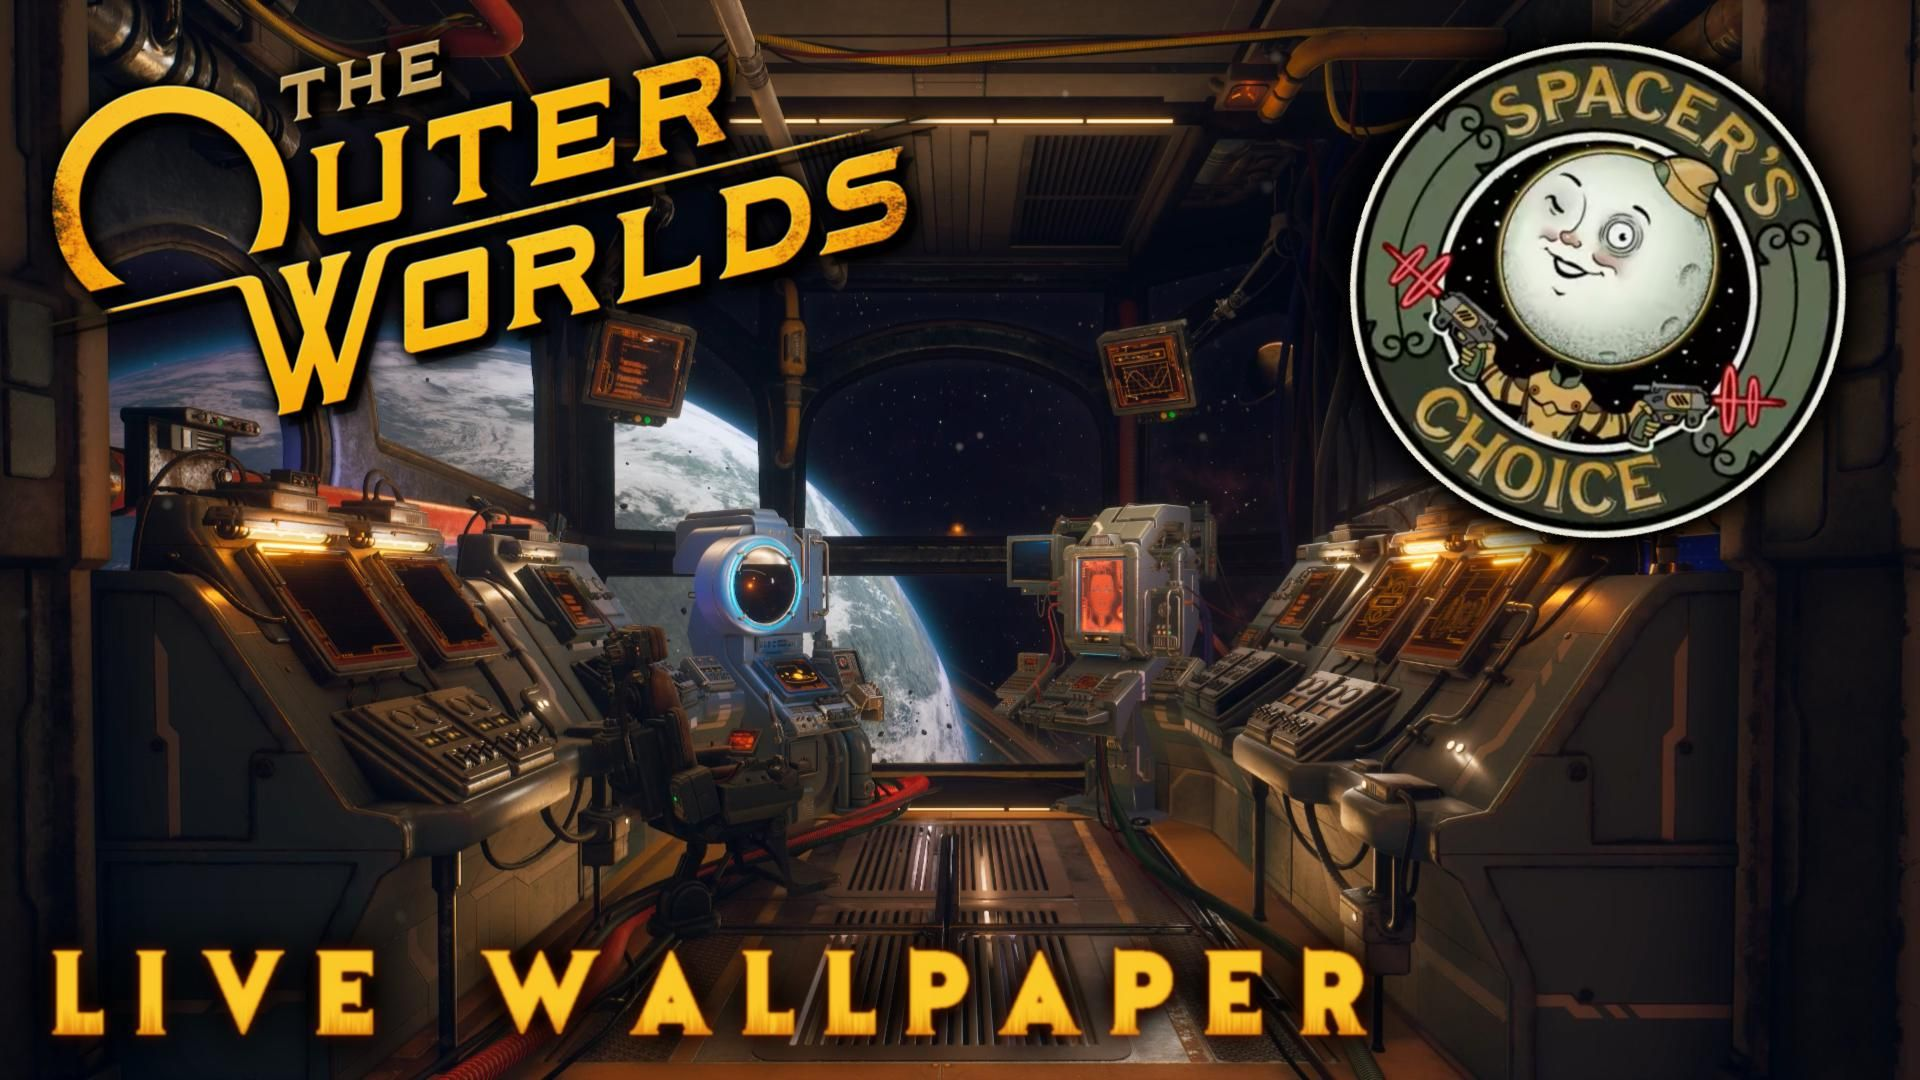 The Outer Worlds Live Wallpaper 1920x1080 60fps Wallpaper Engine Link In Comments Live Wallpapers Wallpaper Active Wallpaper